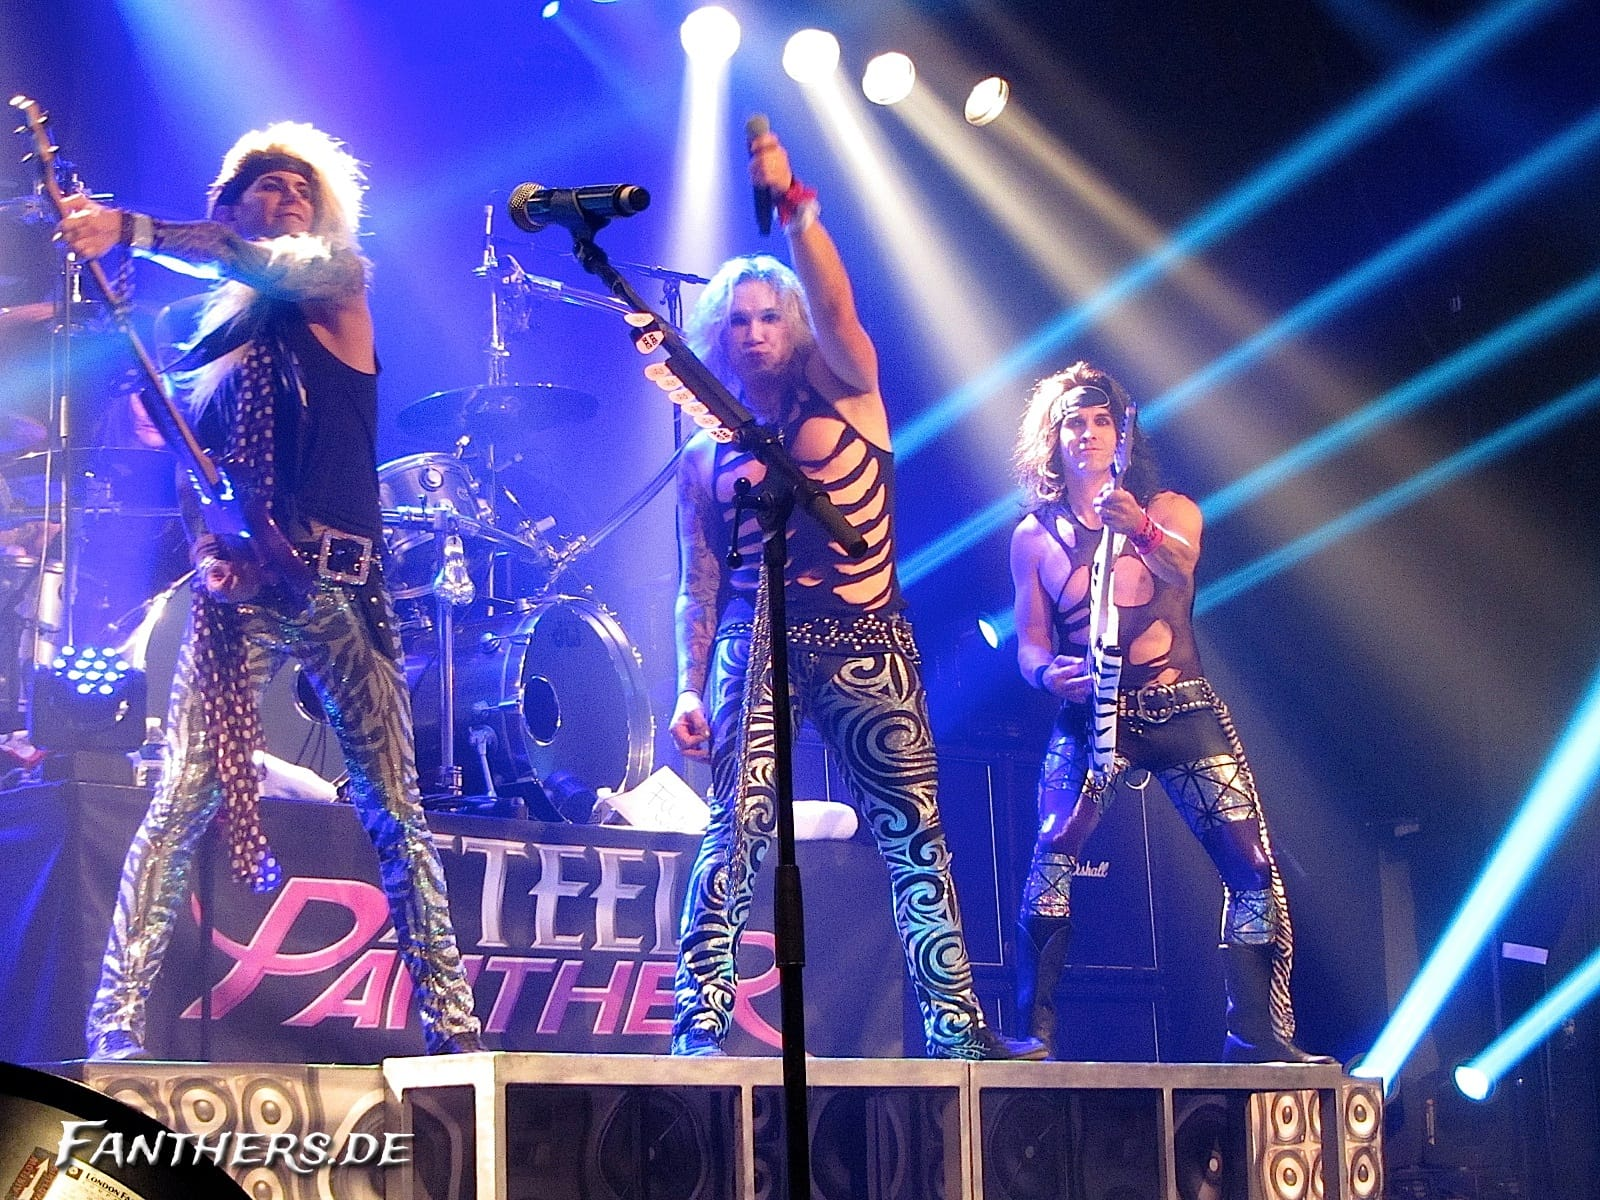 Steel Panther @ Le Bataclan Paris, 30.10.2012